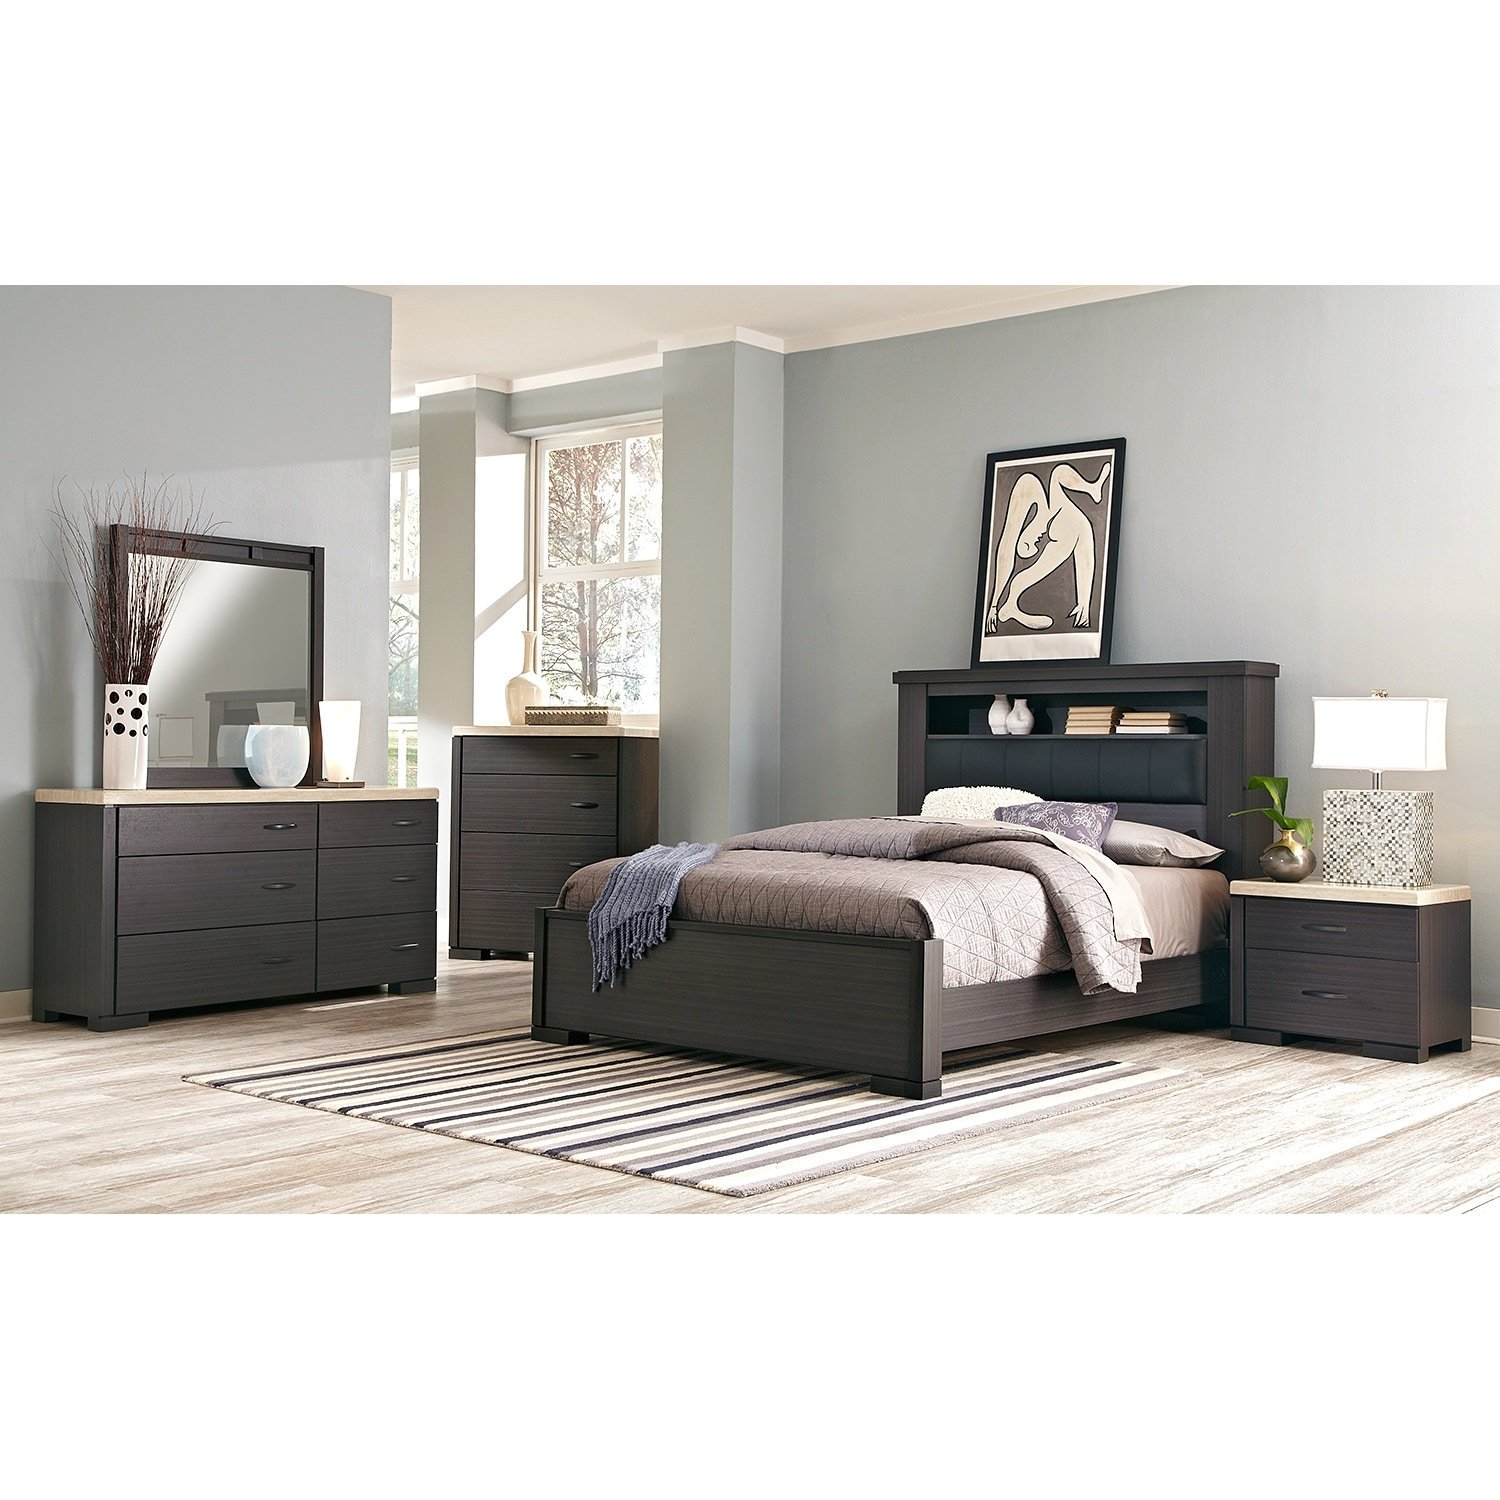 Bedroom Set Furniture ~ Camino pc king bedroom value city furniture